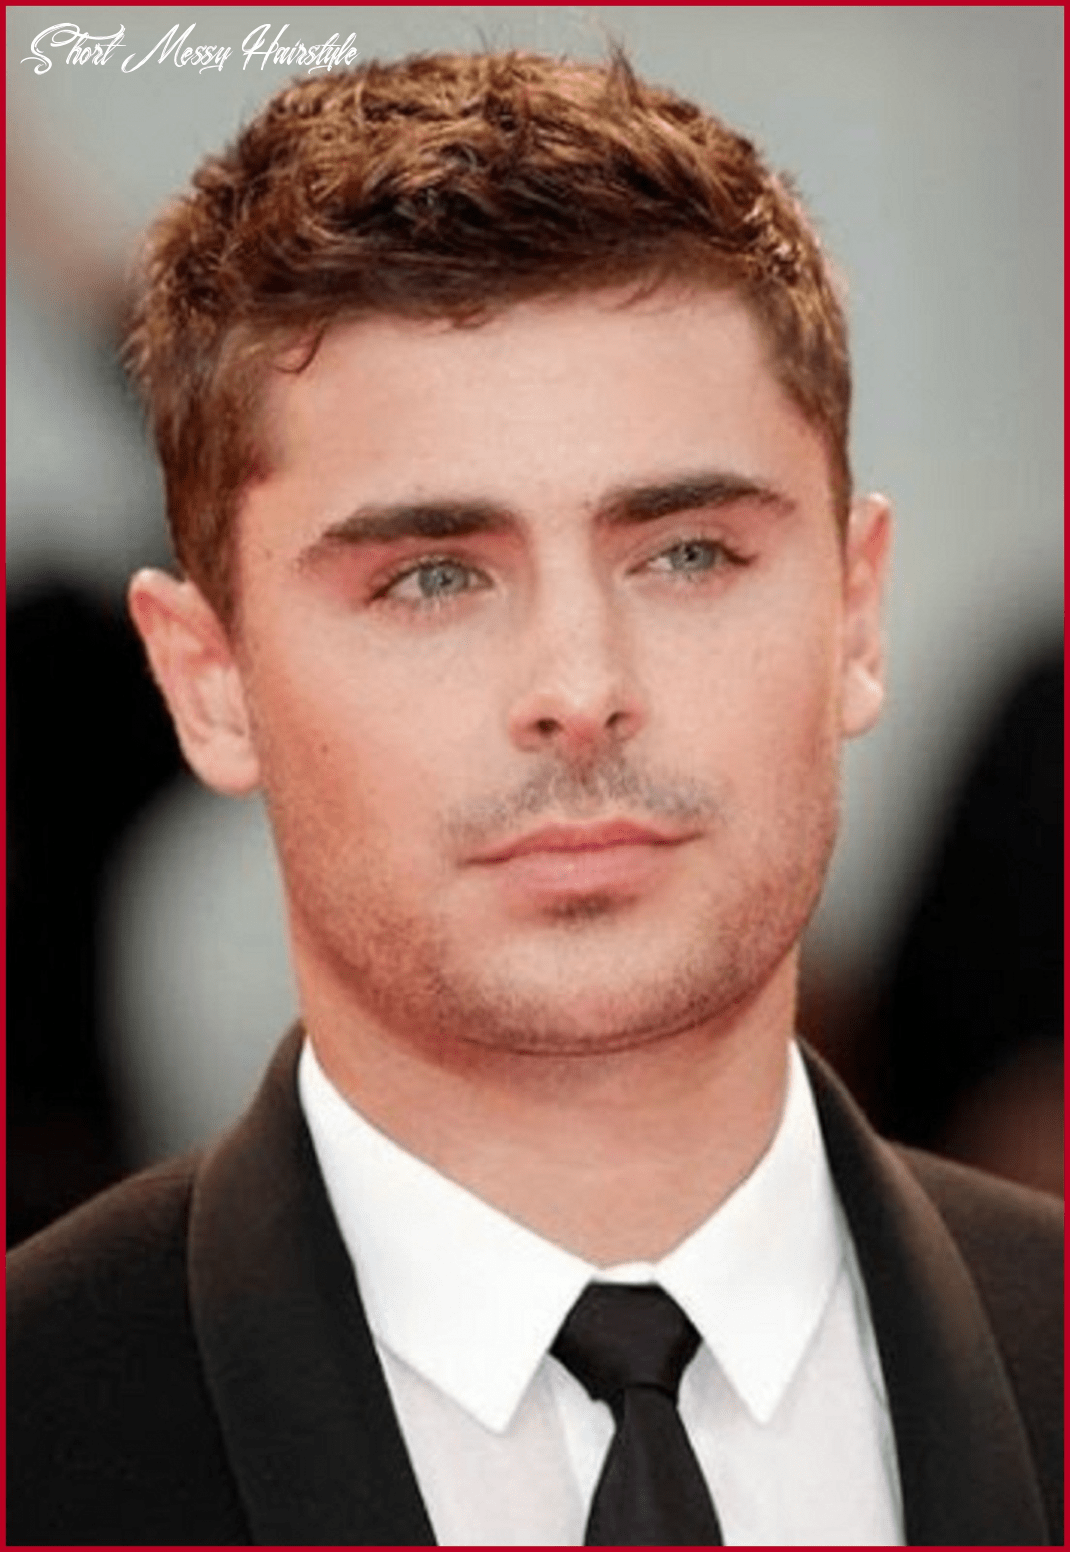 Unique short messy hairstyle for men collection of mens hairstyles